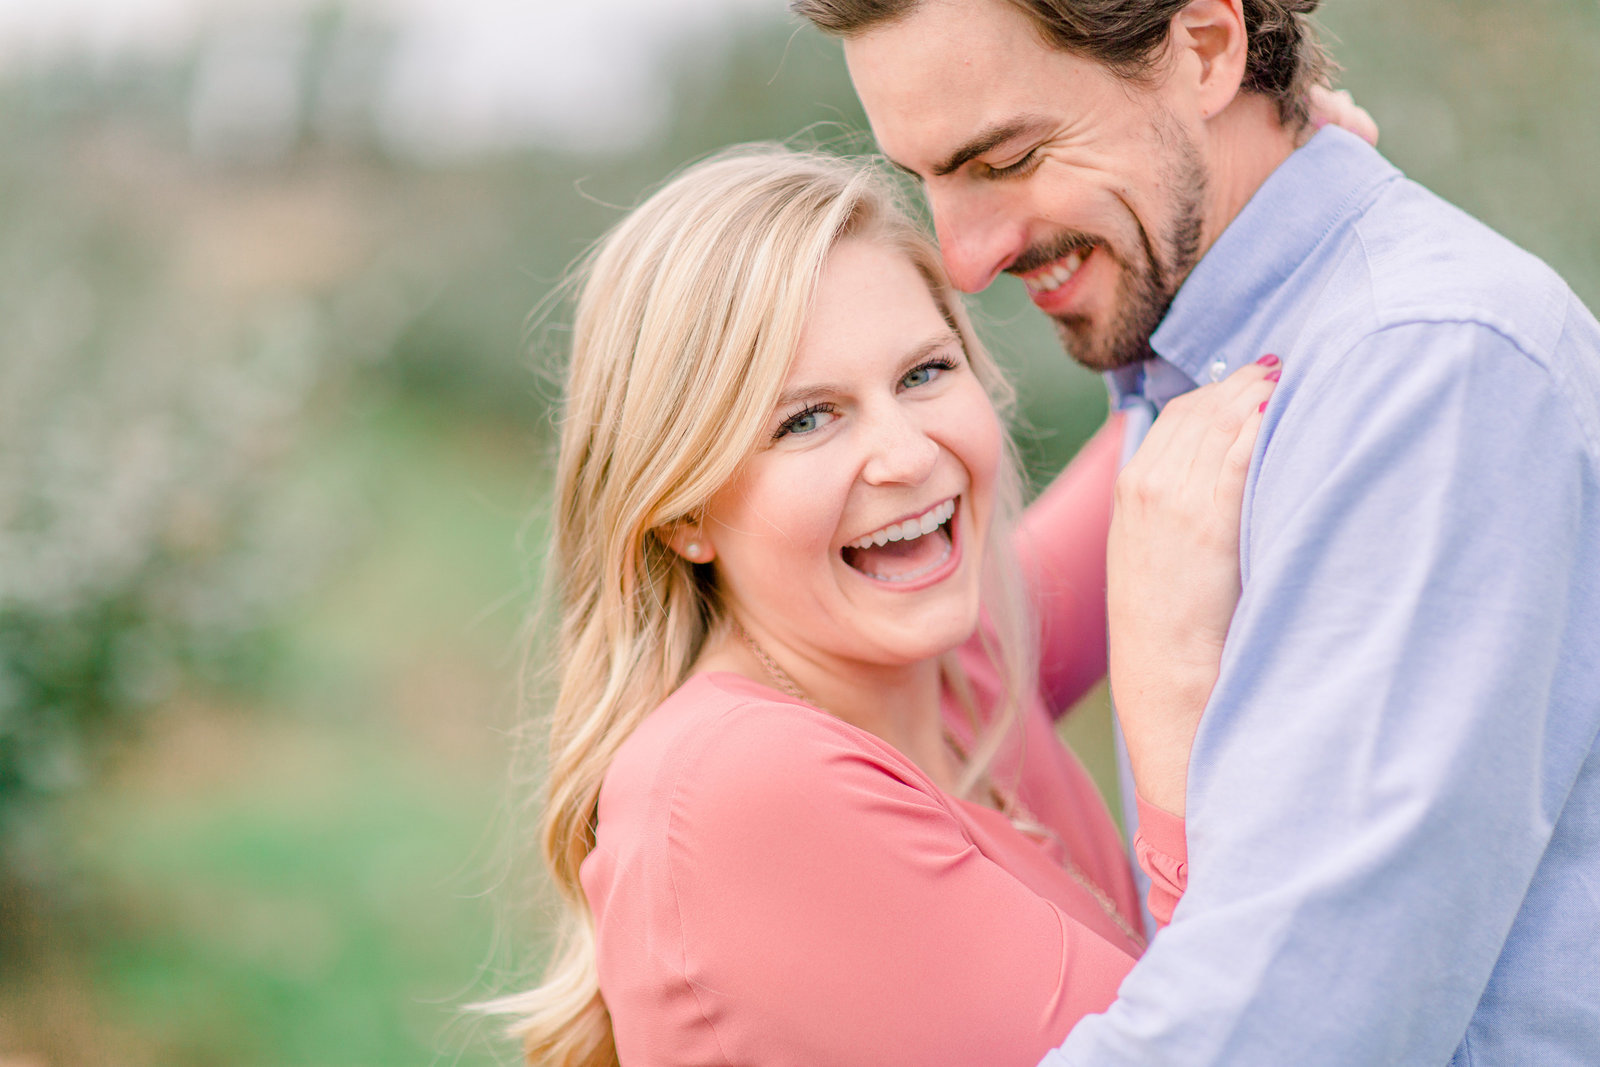 mondovi engagment photos full of laughter